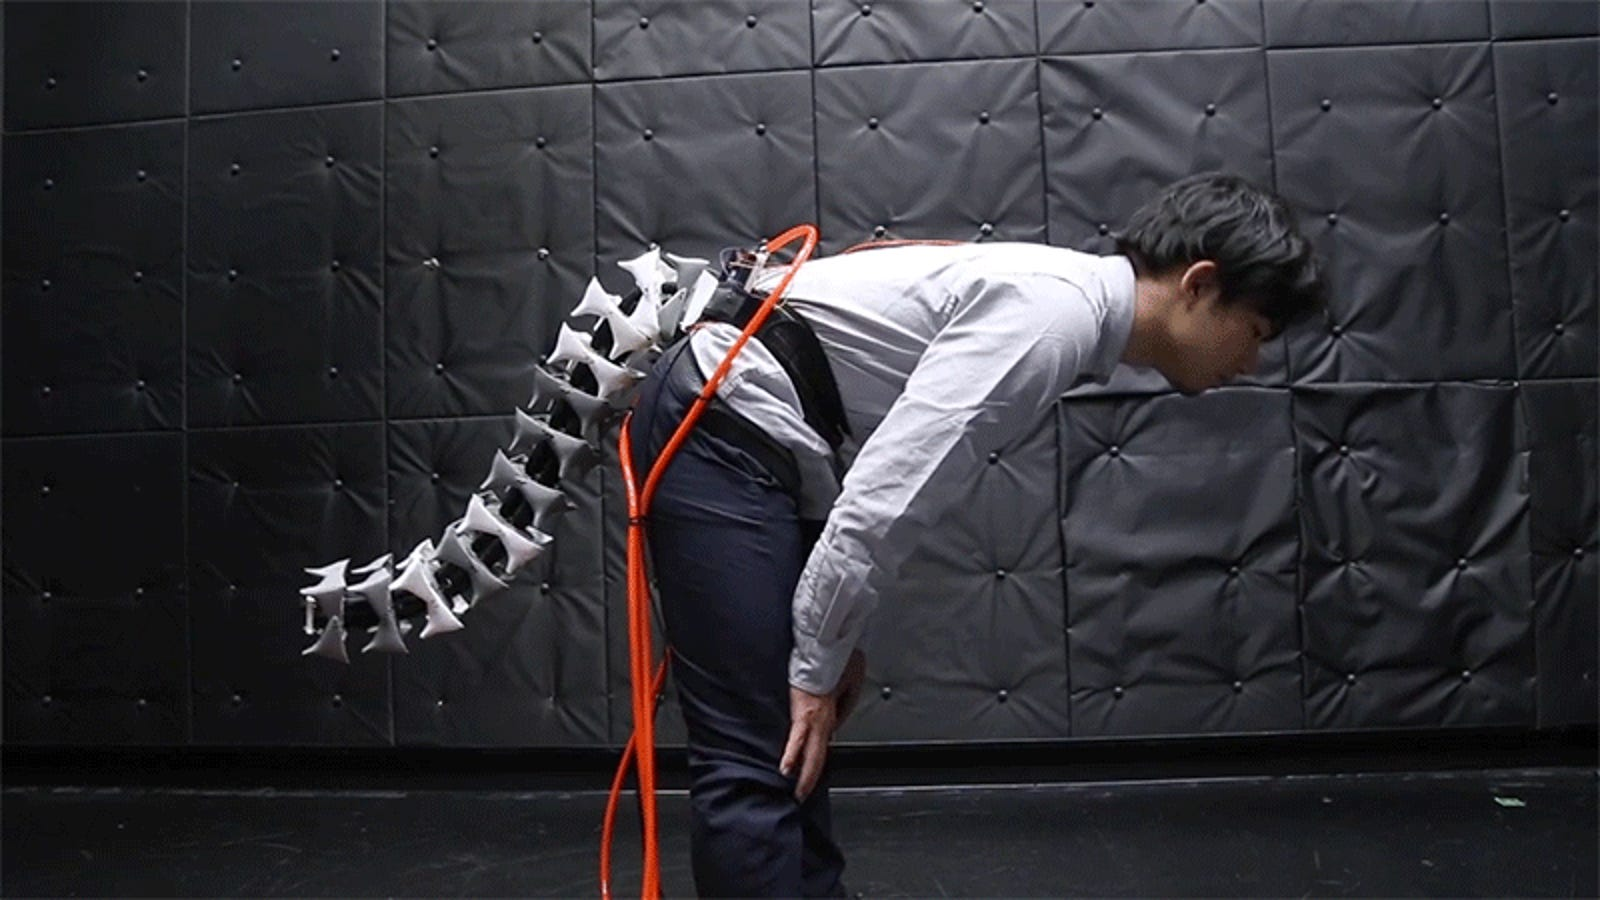 A Wearable Robotic Tail Turns Someone Into a Furry With Improved Steadiness thumbnail